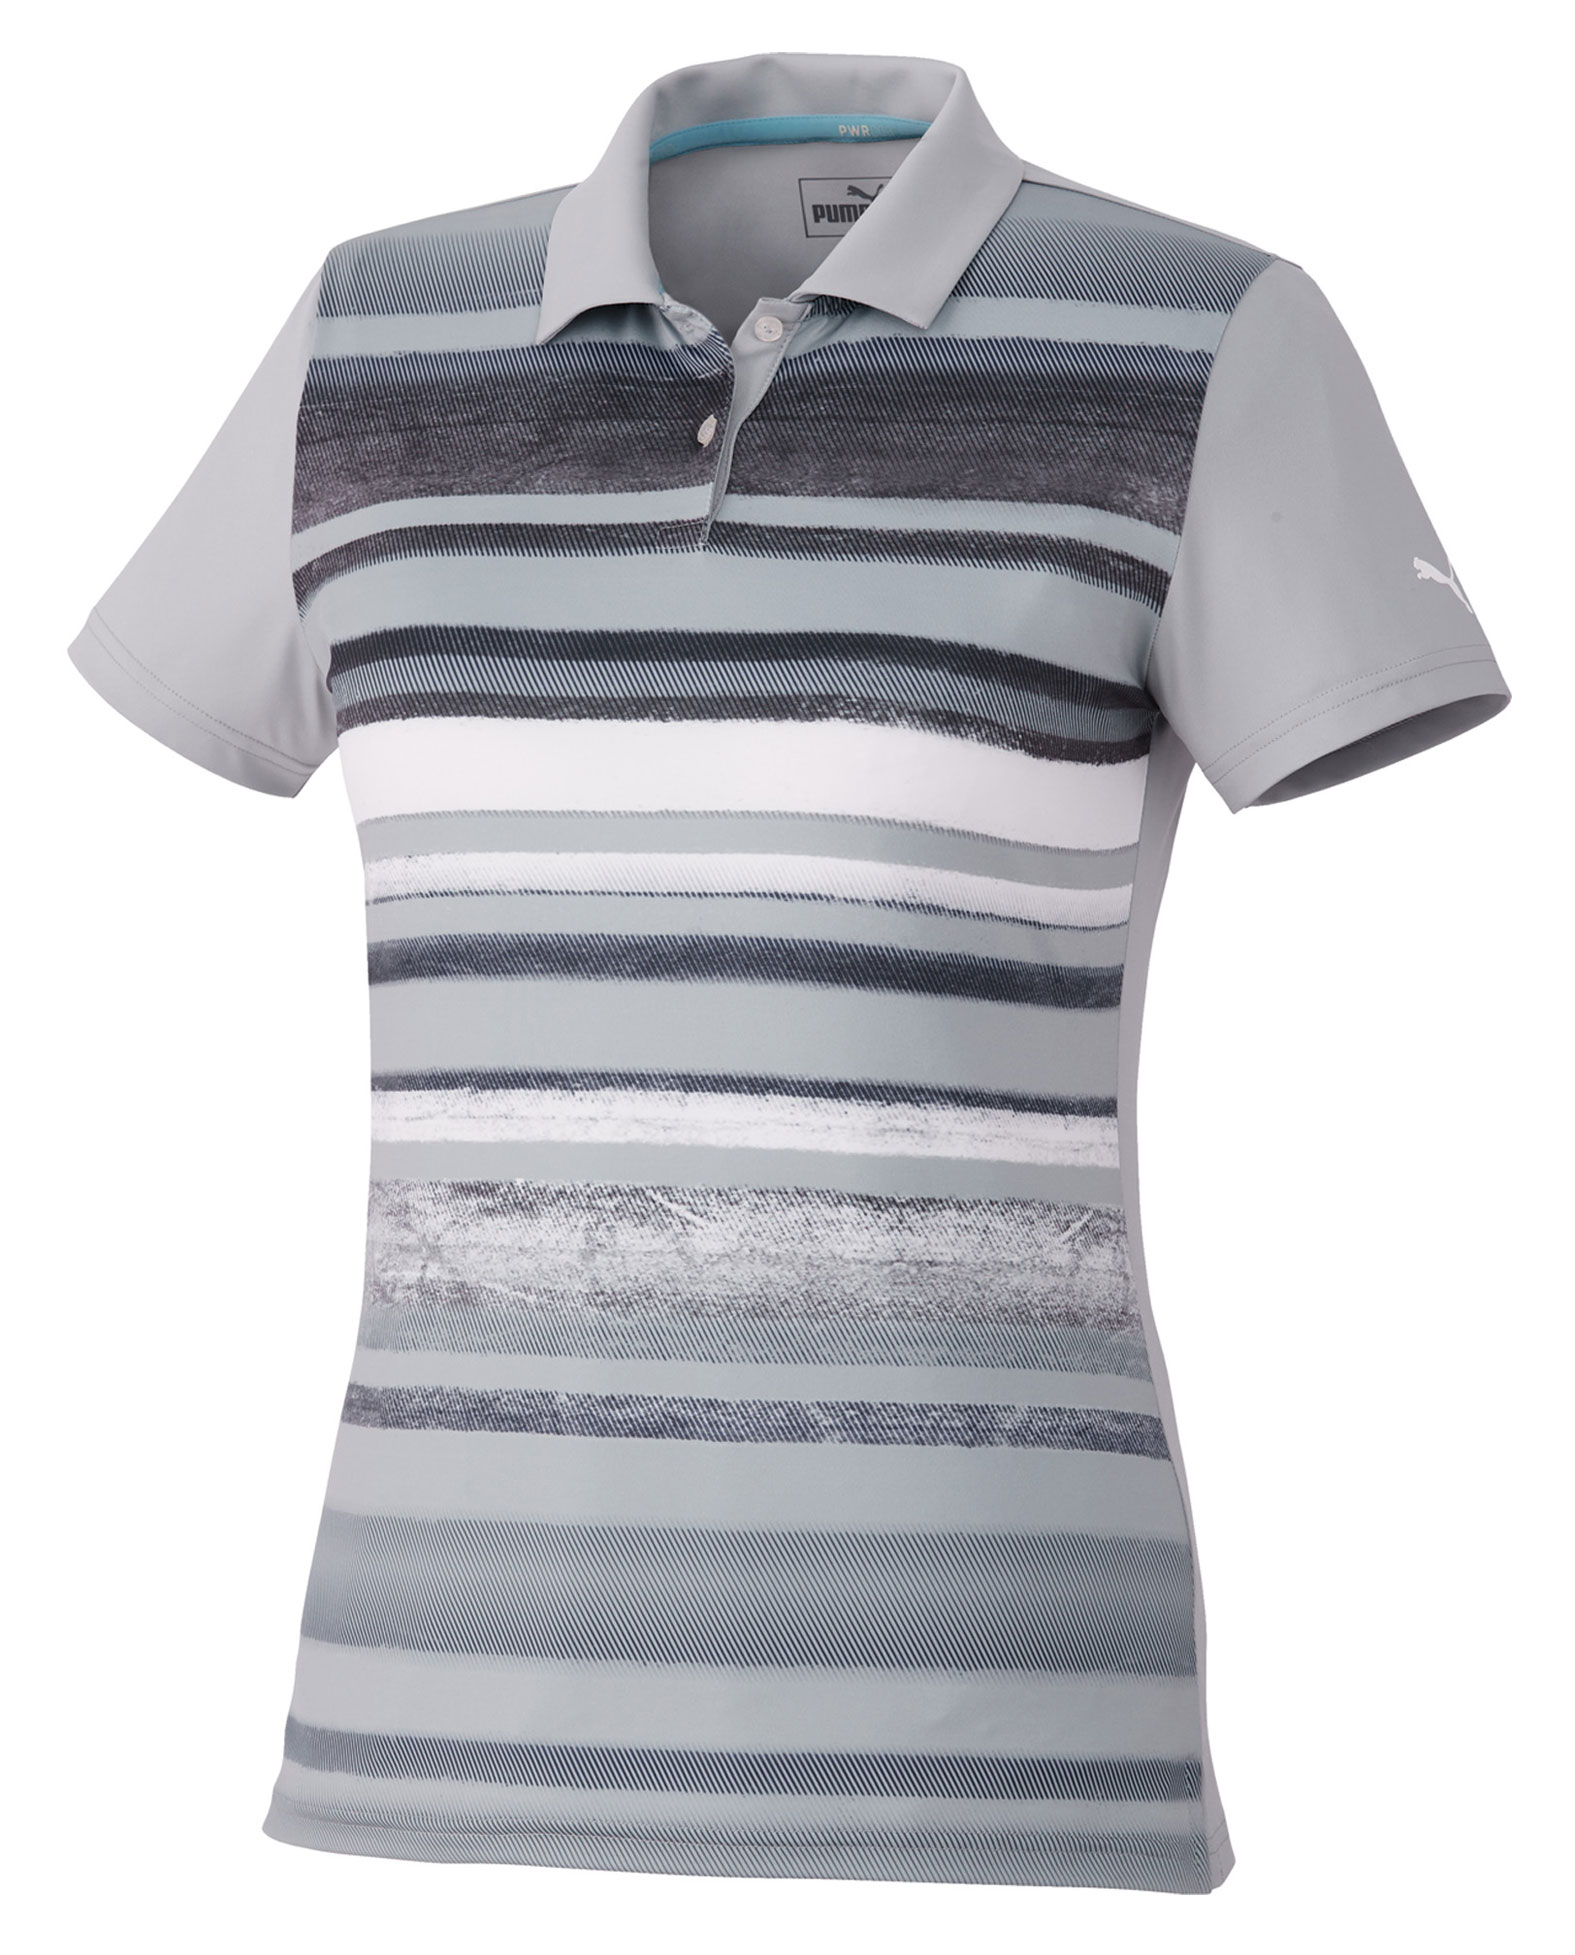 Womens Puma Washed Striped Polo